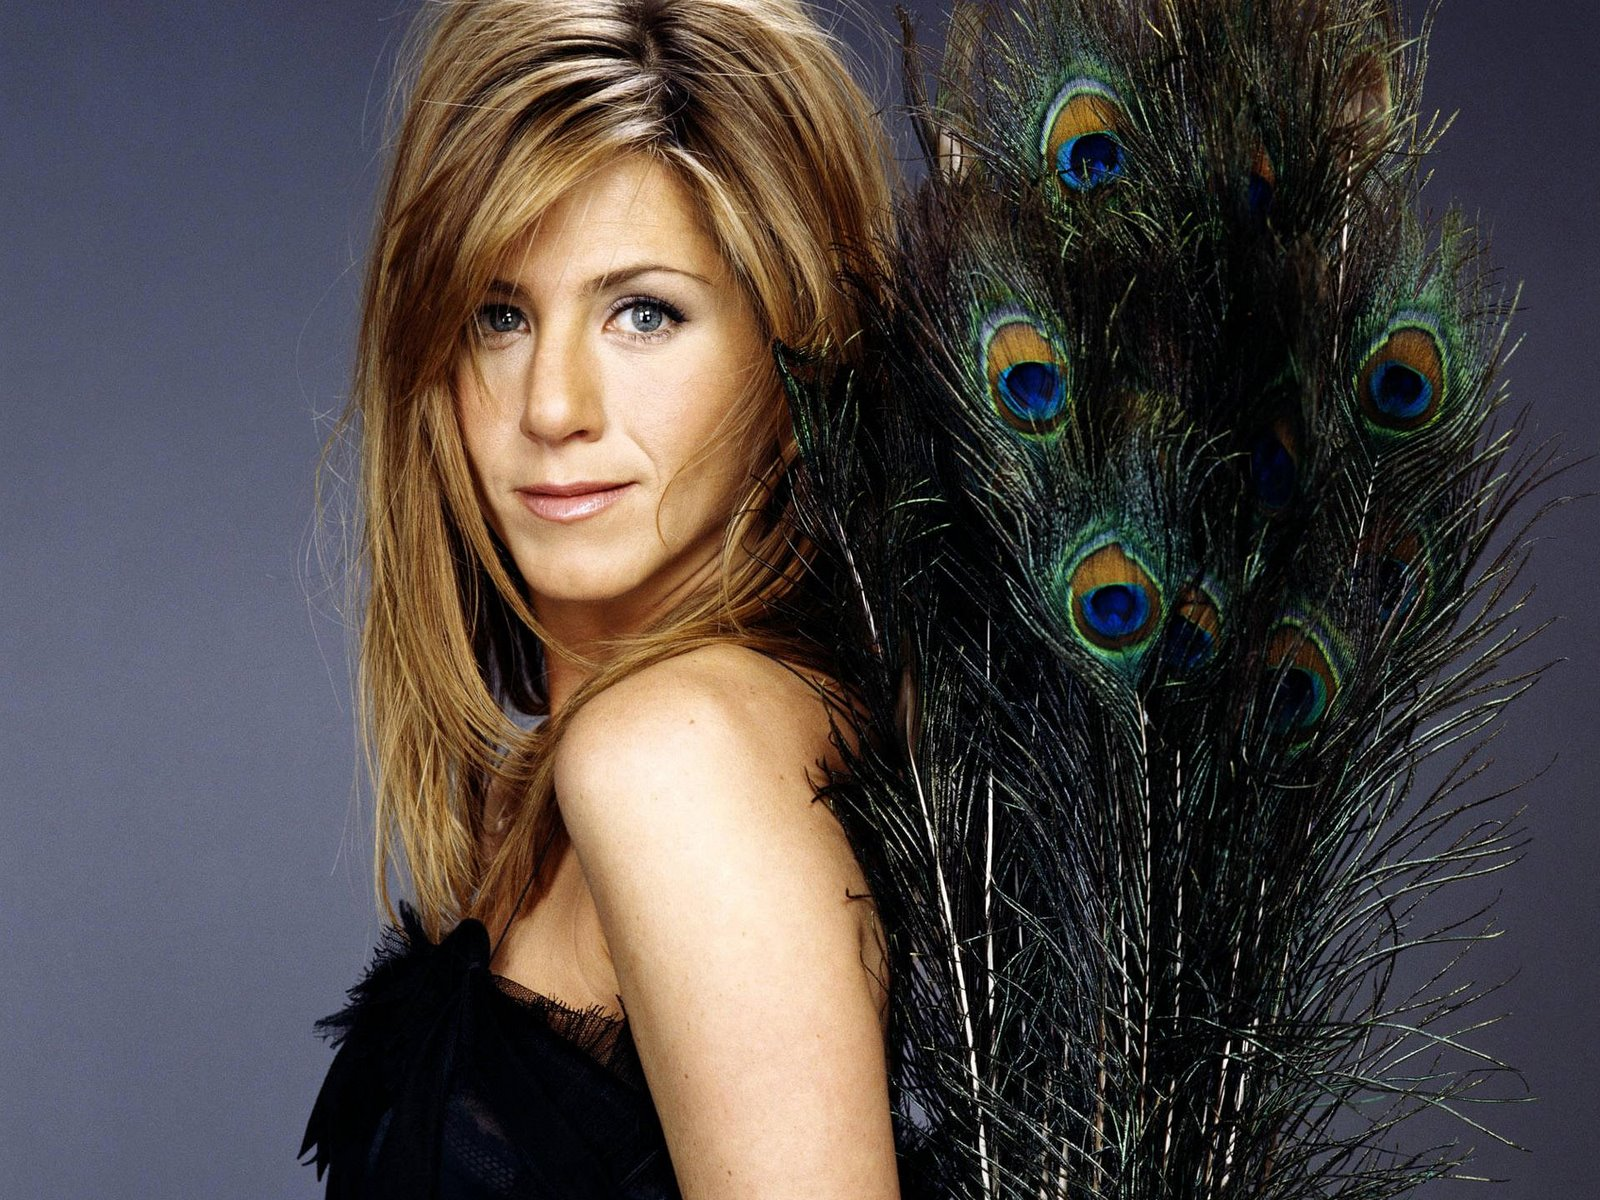 Hot and sexy jennifer aniston high quality ( hq ) pic collection